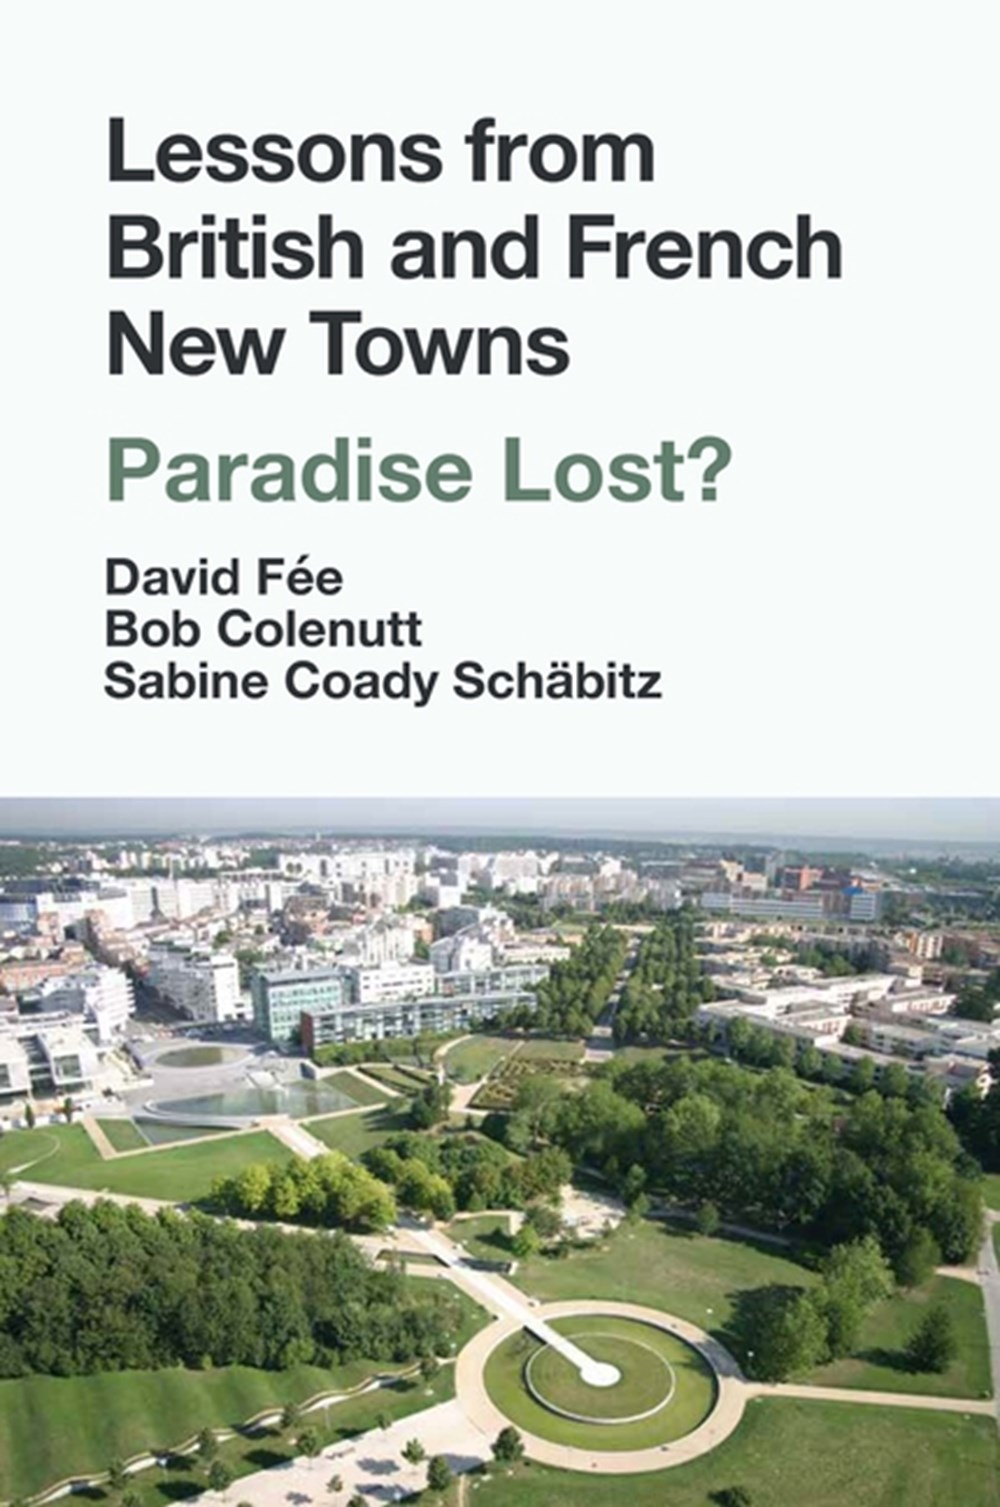 Lessons from the British and French New Towns Paradise Lost?